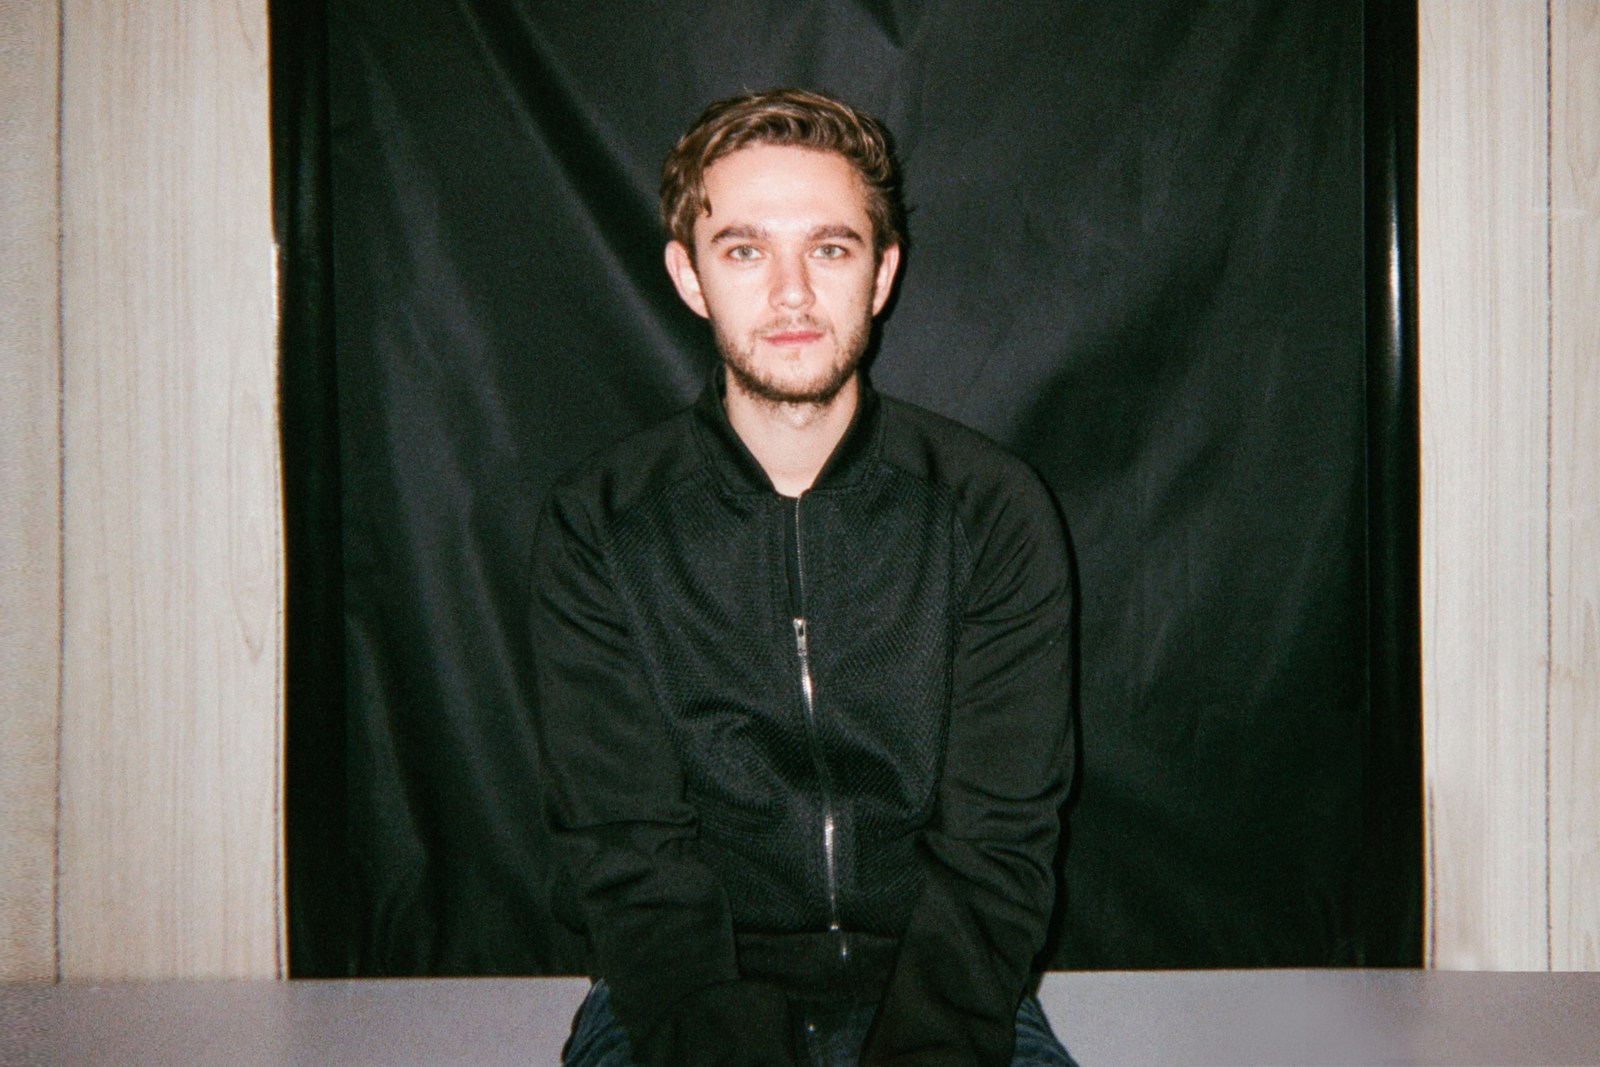 Zedd Ghostproducing, His SoundCloud Career & Working with Skirlles